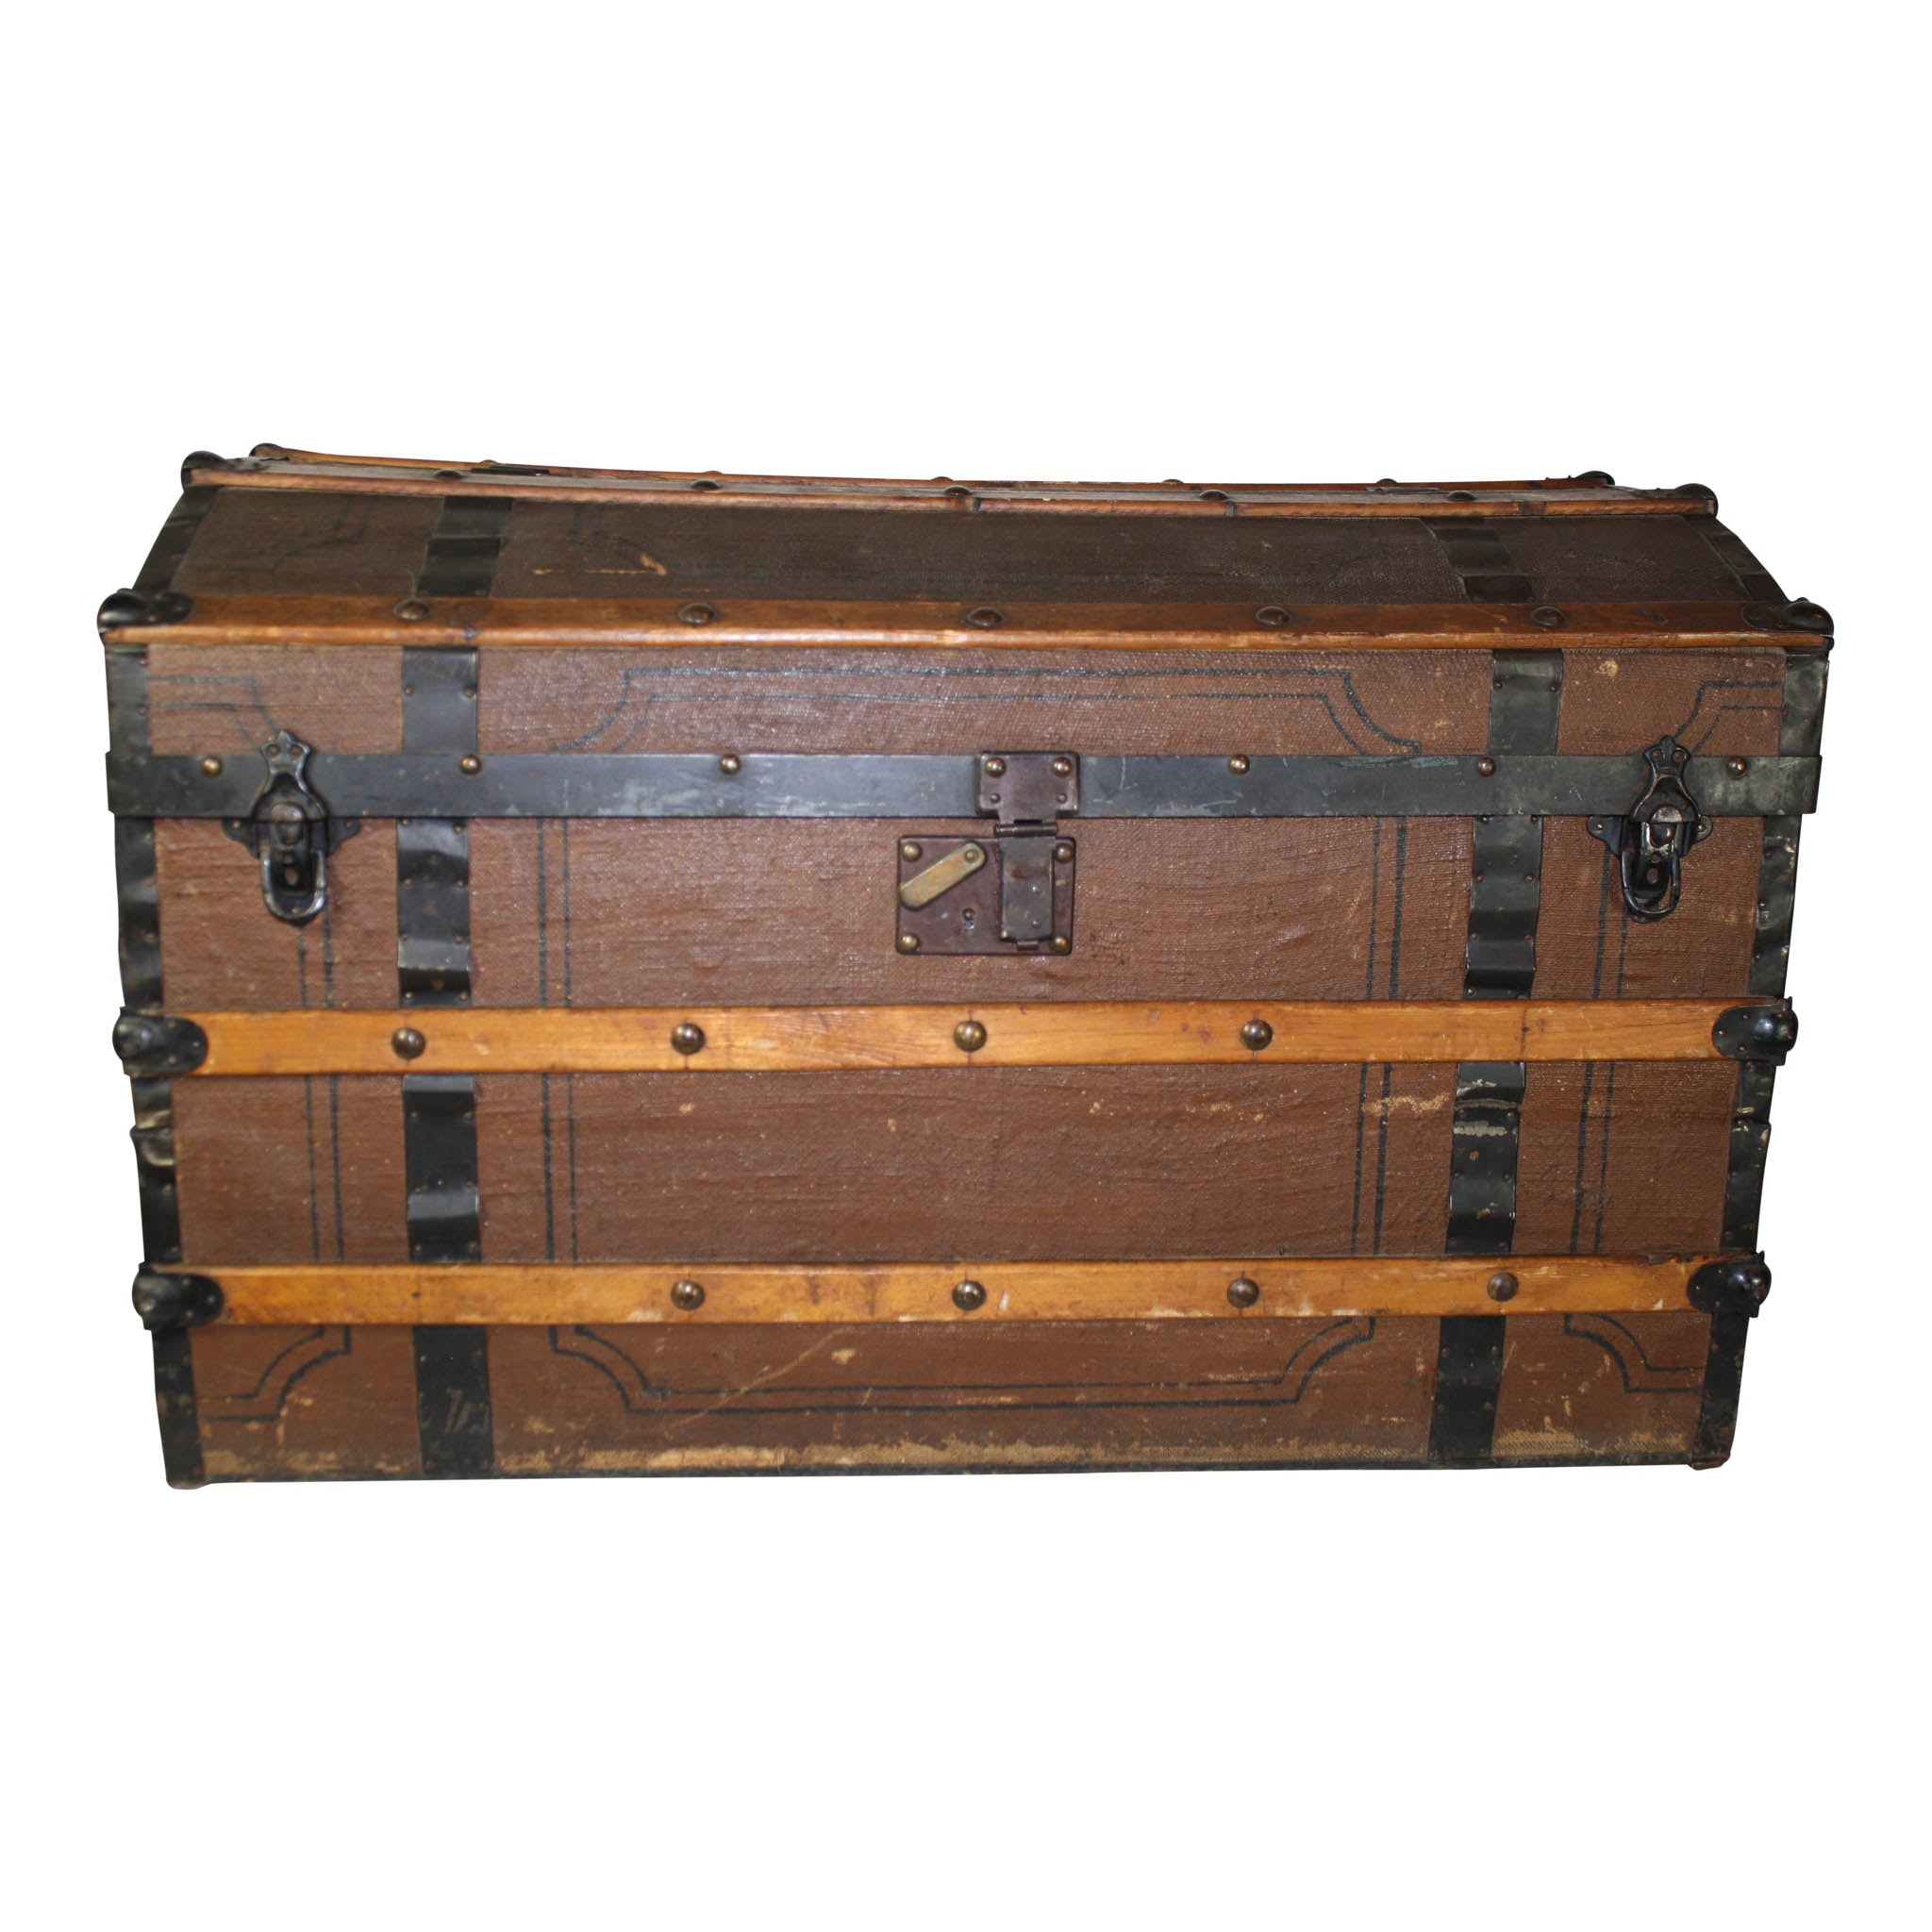 Canvas Covered Barrel Top Trunk